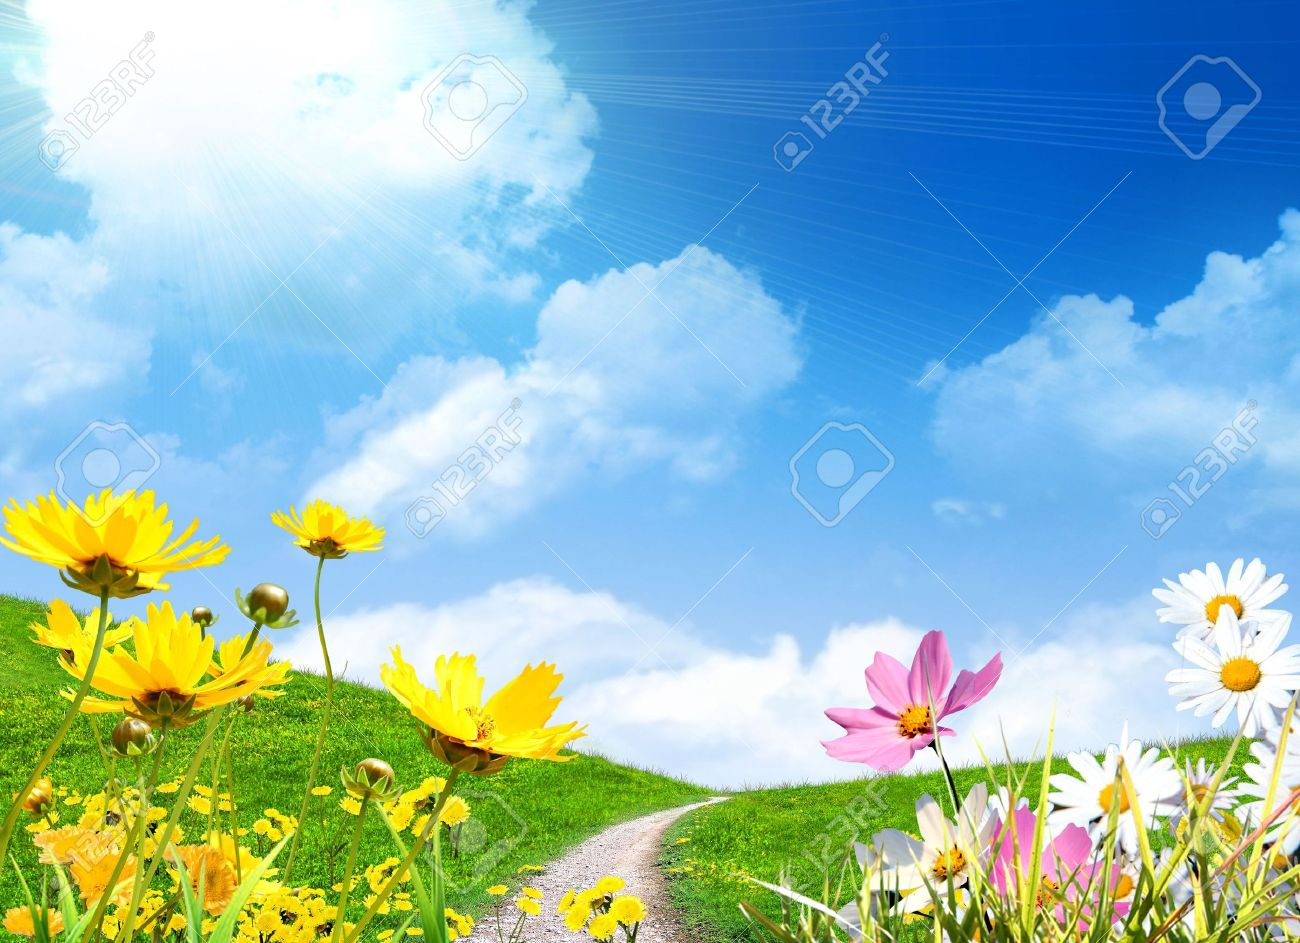 Spring flowers and a grassy meadow - 4923717